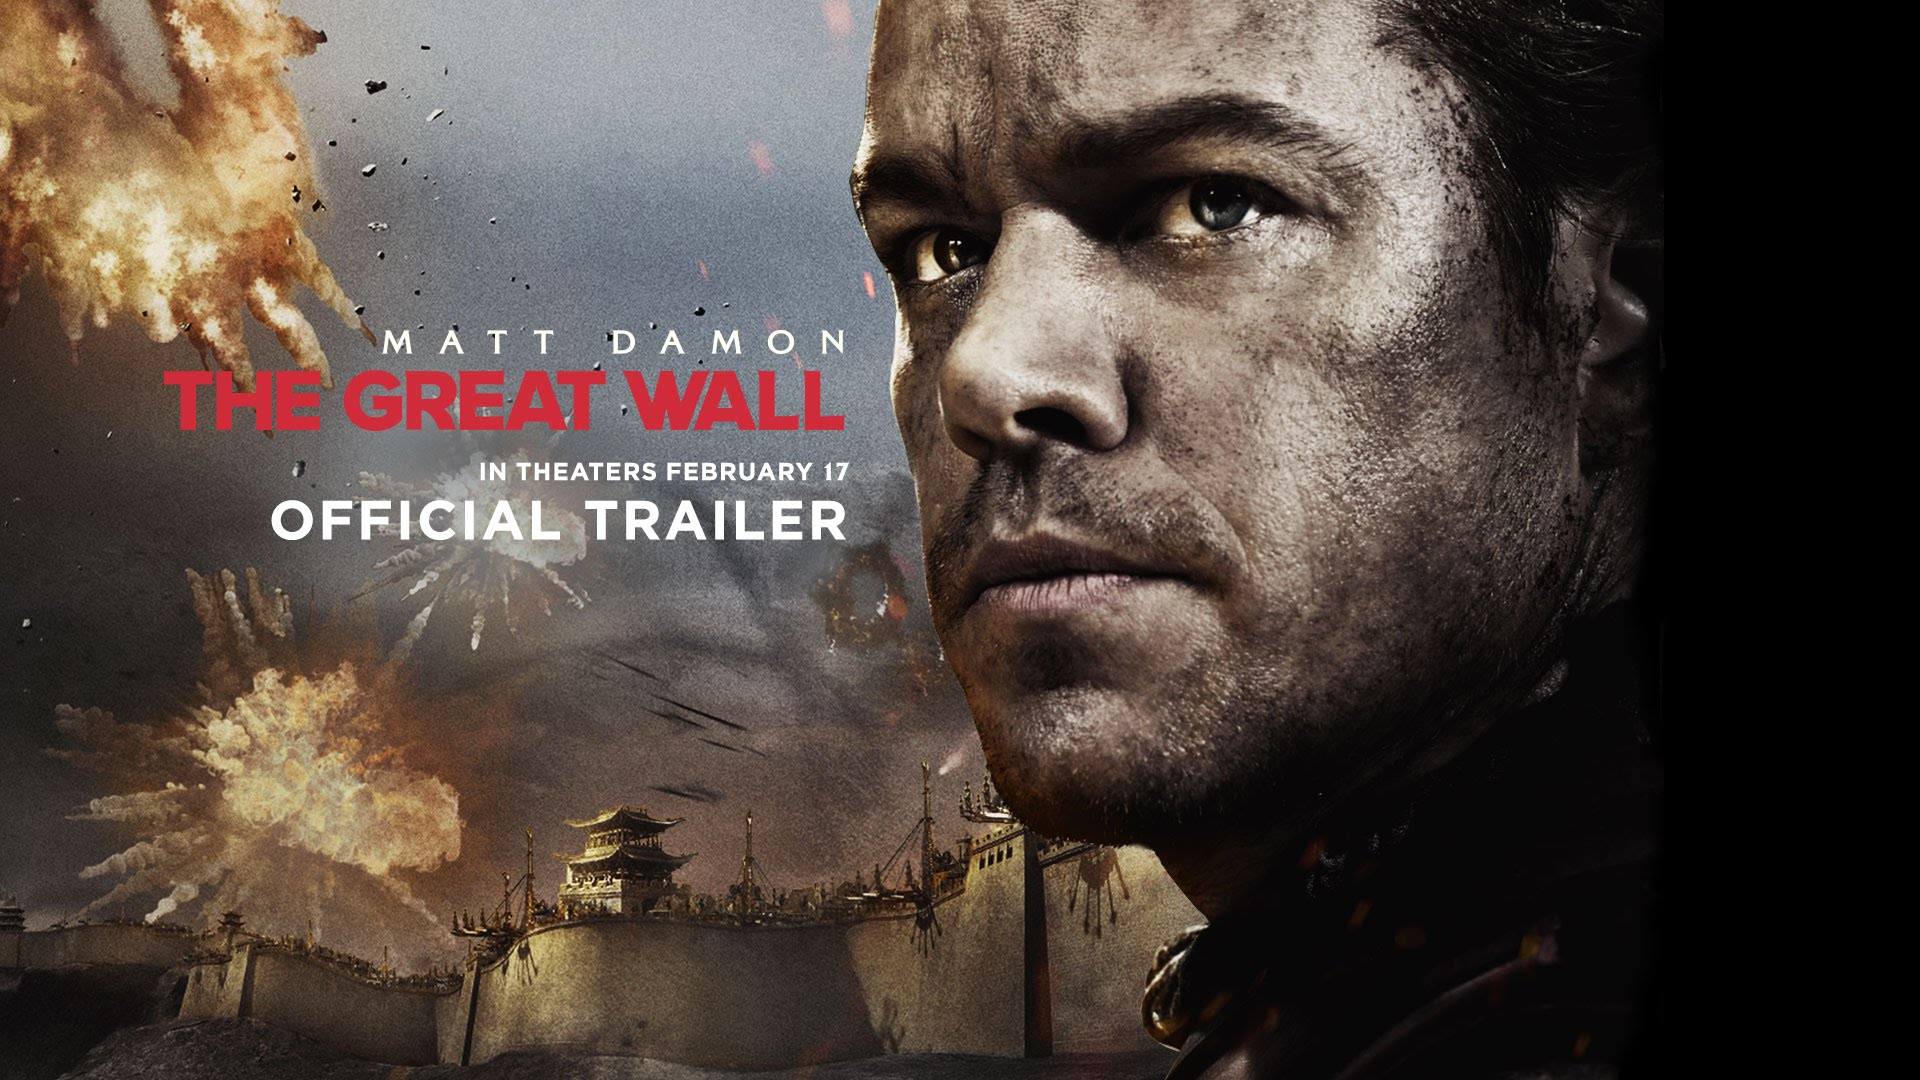 5 REASONS WHY THE GREAT WALL FLOPPED AT THE BOX OFFICE